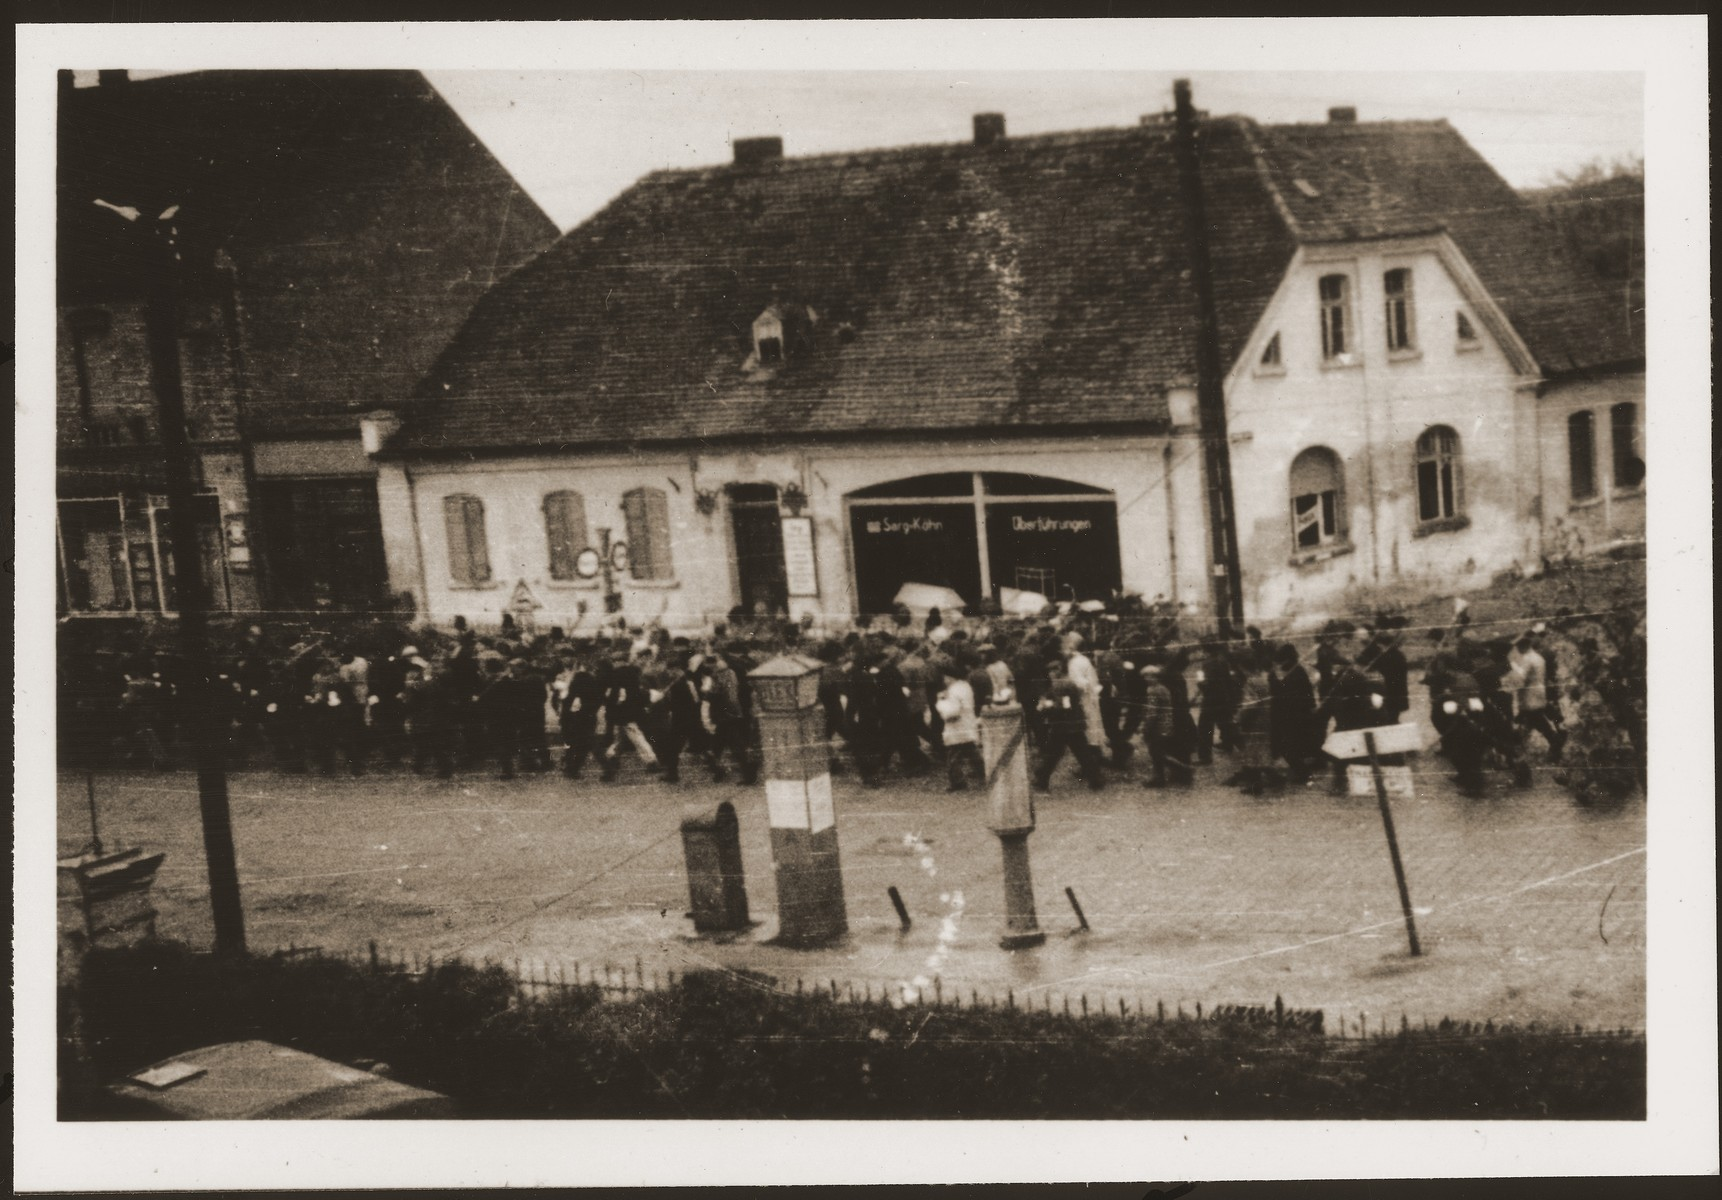 German civilians from Gardelegen march to a barn just outside the town, where they will dig graves for prisoners killed by the SS inside the barn.